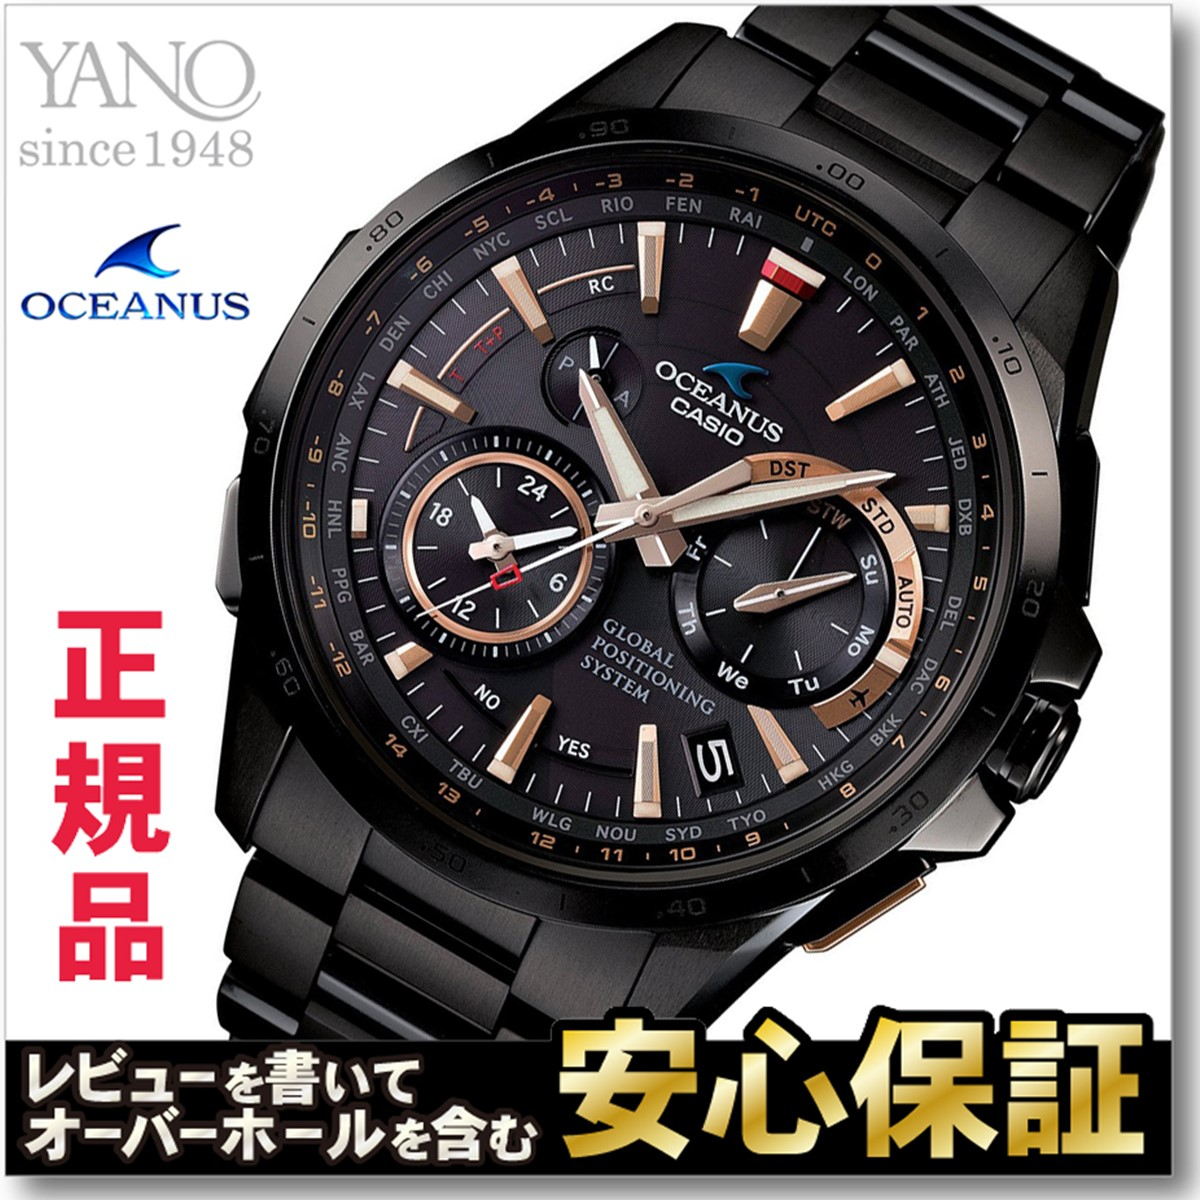 of men a editor crop scale whole for subsampling historic article collection chopard grand monaco baselworld theme the new upscale chopardtoughmensnew created jewellery tough has around watches false